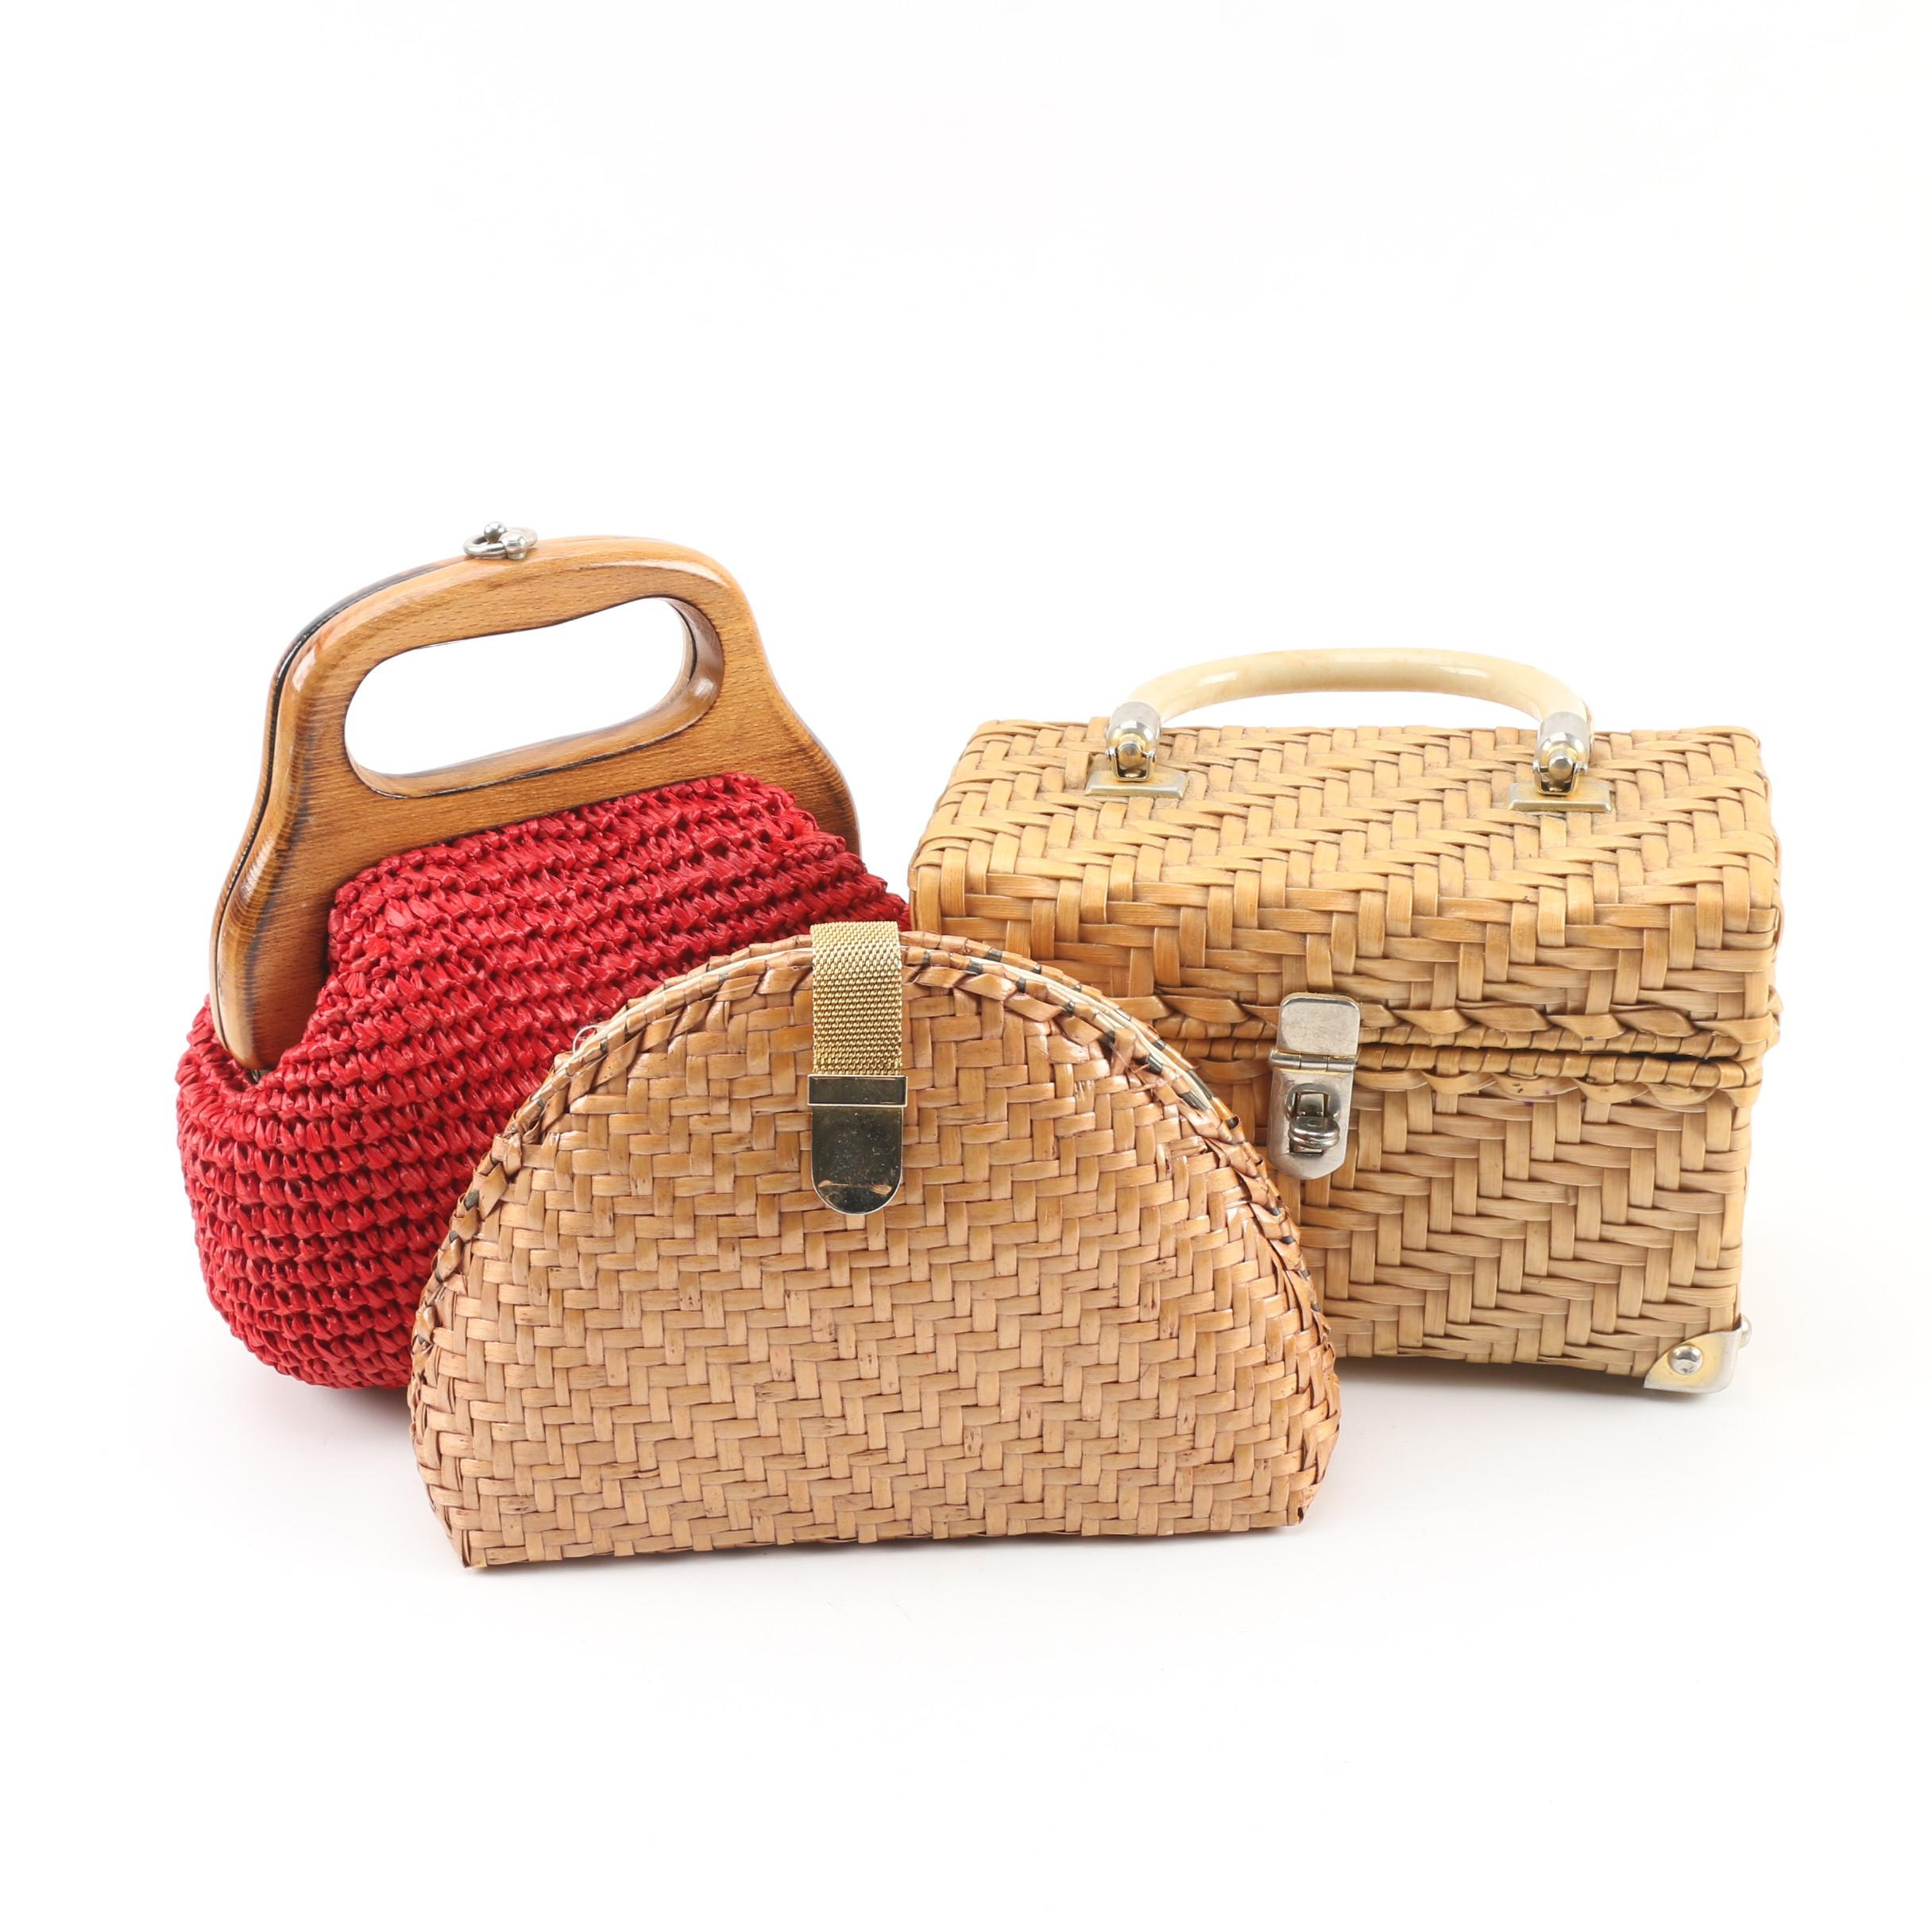 Vintage Wicker Top Handle Box Bag and Clutch with Woven Raffia Frame Bag